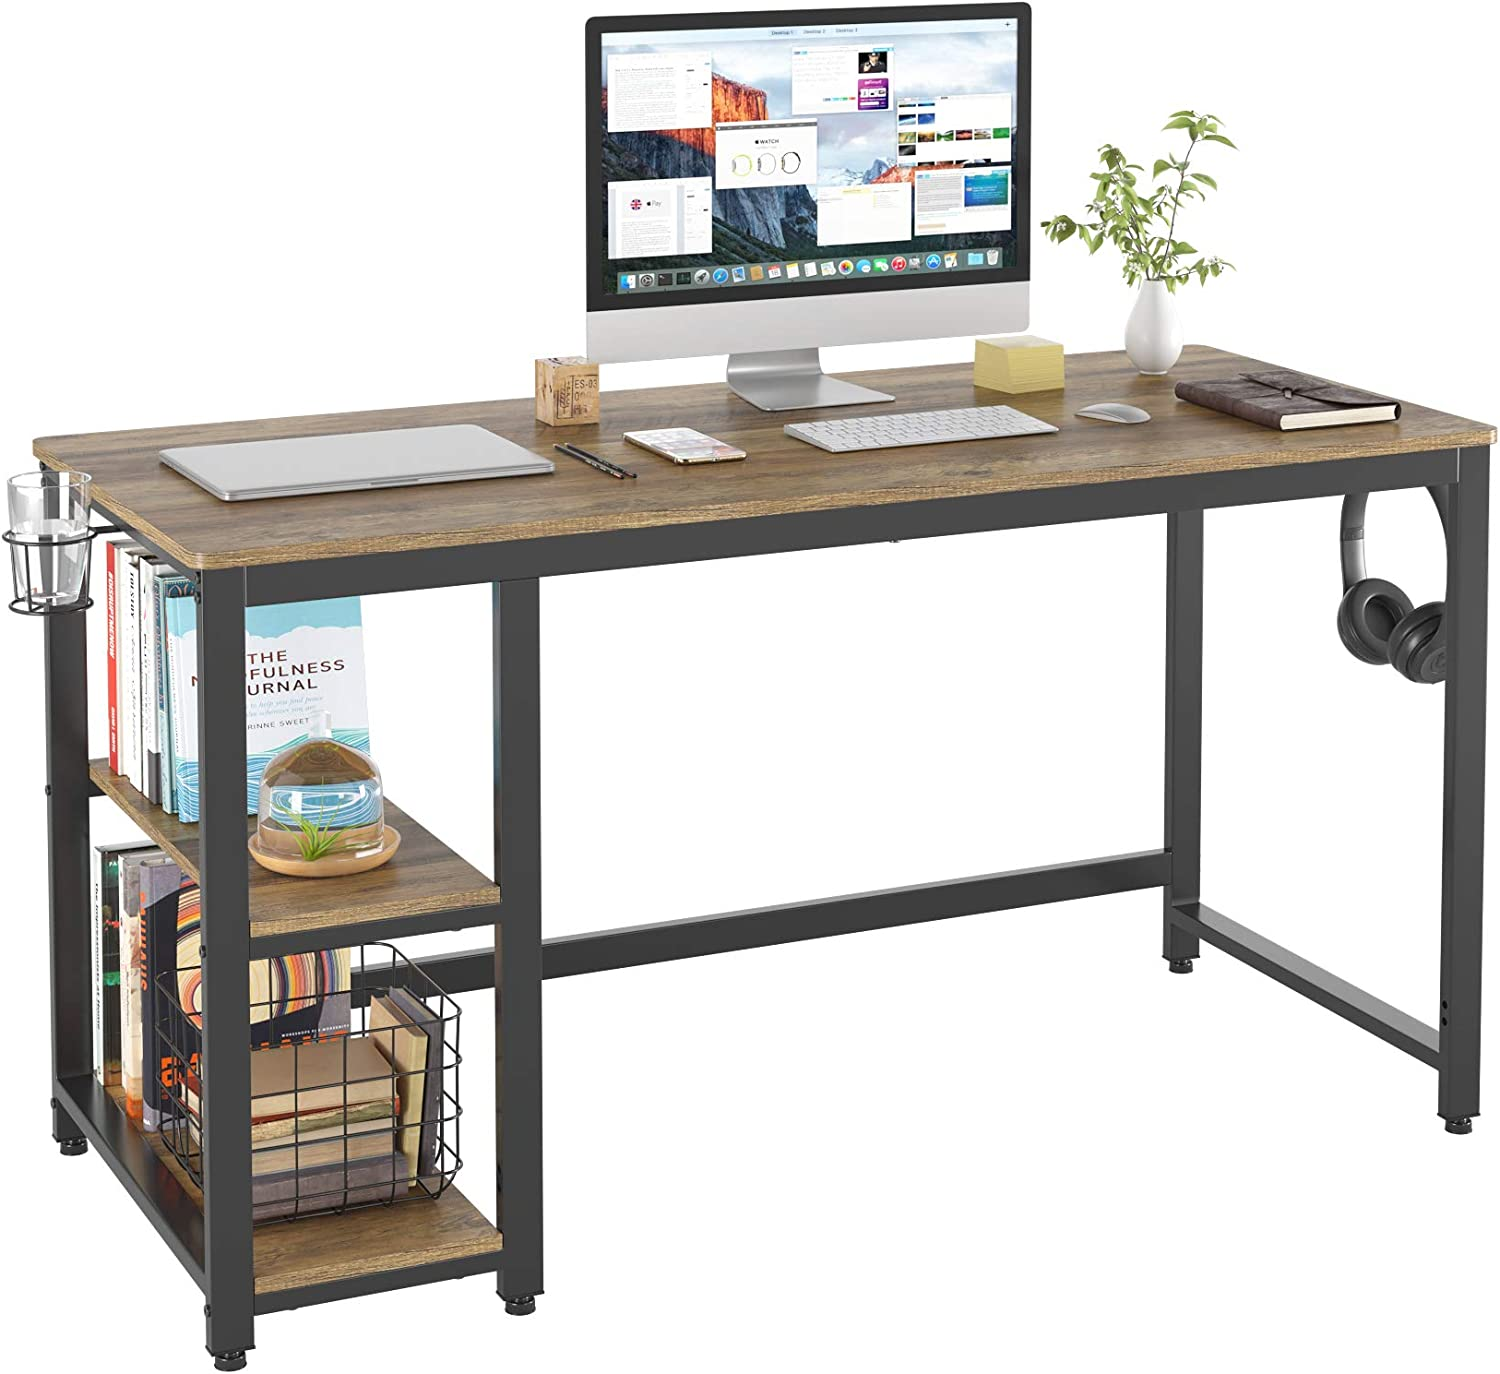 "HOMECHO 55"" Industrial Computer Writing Desk for Home Office Work, Wood Laptop Study Desk with 2 Side Storage Shelves, Simple/Large PC Workstation Gaming Table with Sturdy Metal Frame, Rustic Brown"